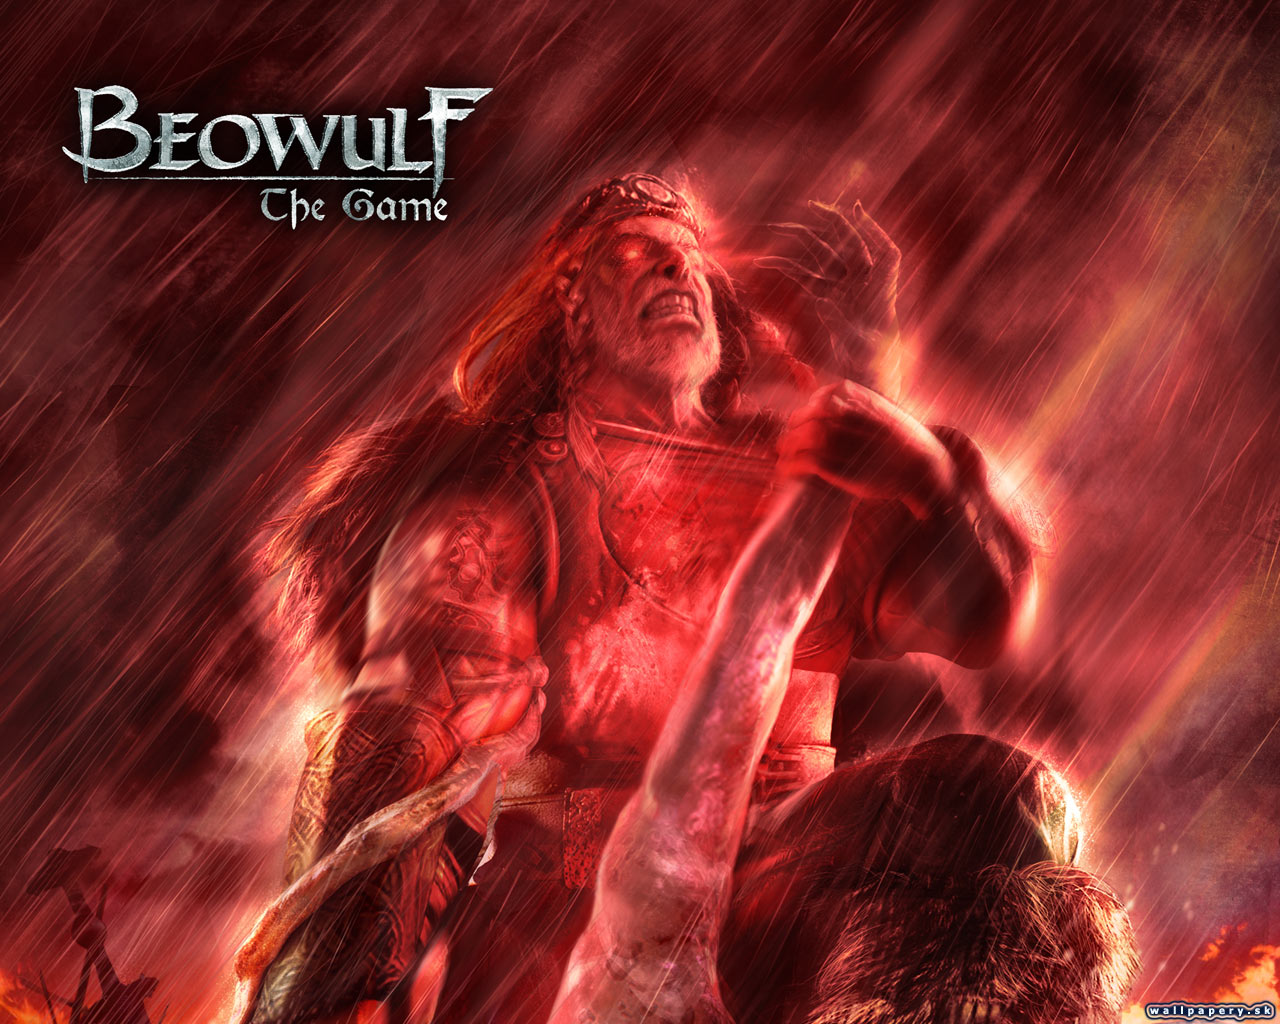 essence of doom in beowulf The project gutenberg ebook of beowulf in the doom of the lord whom death shall take fain, i ween, if the fight he win, in this hall of gold my geatish band.